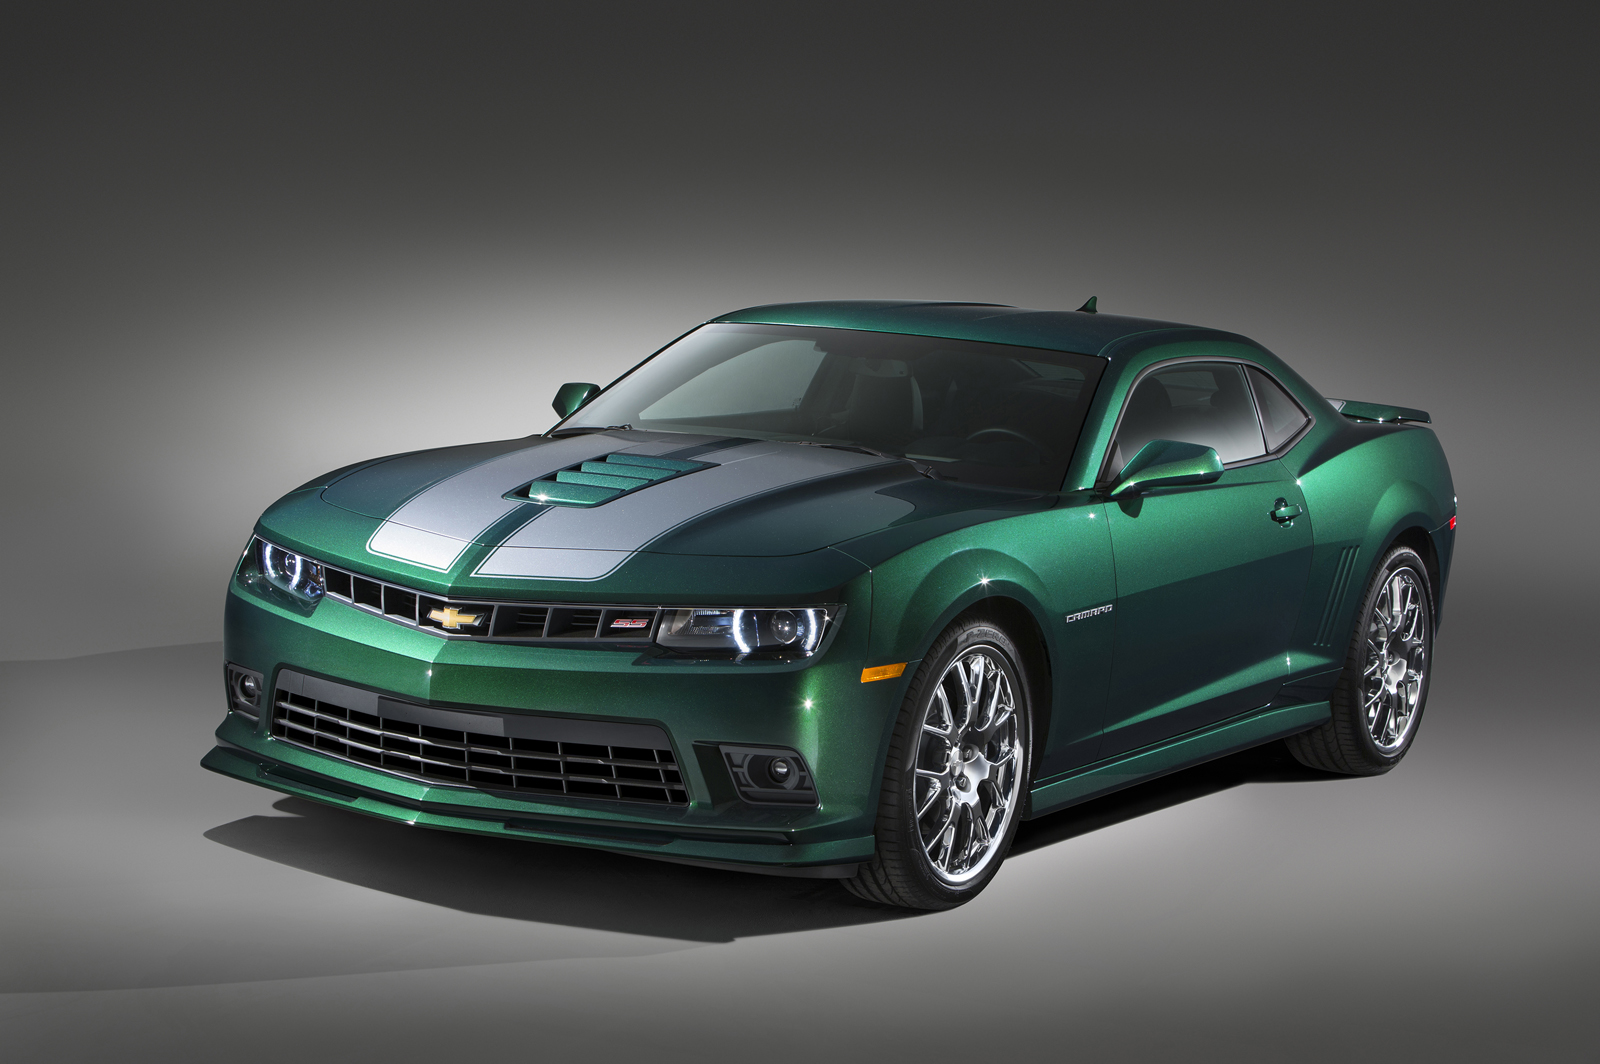 Chevrolet previews special camaro ss for sema 2014 gtspirit - Camaro ss ...